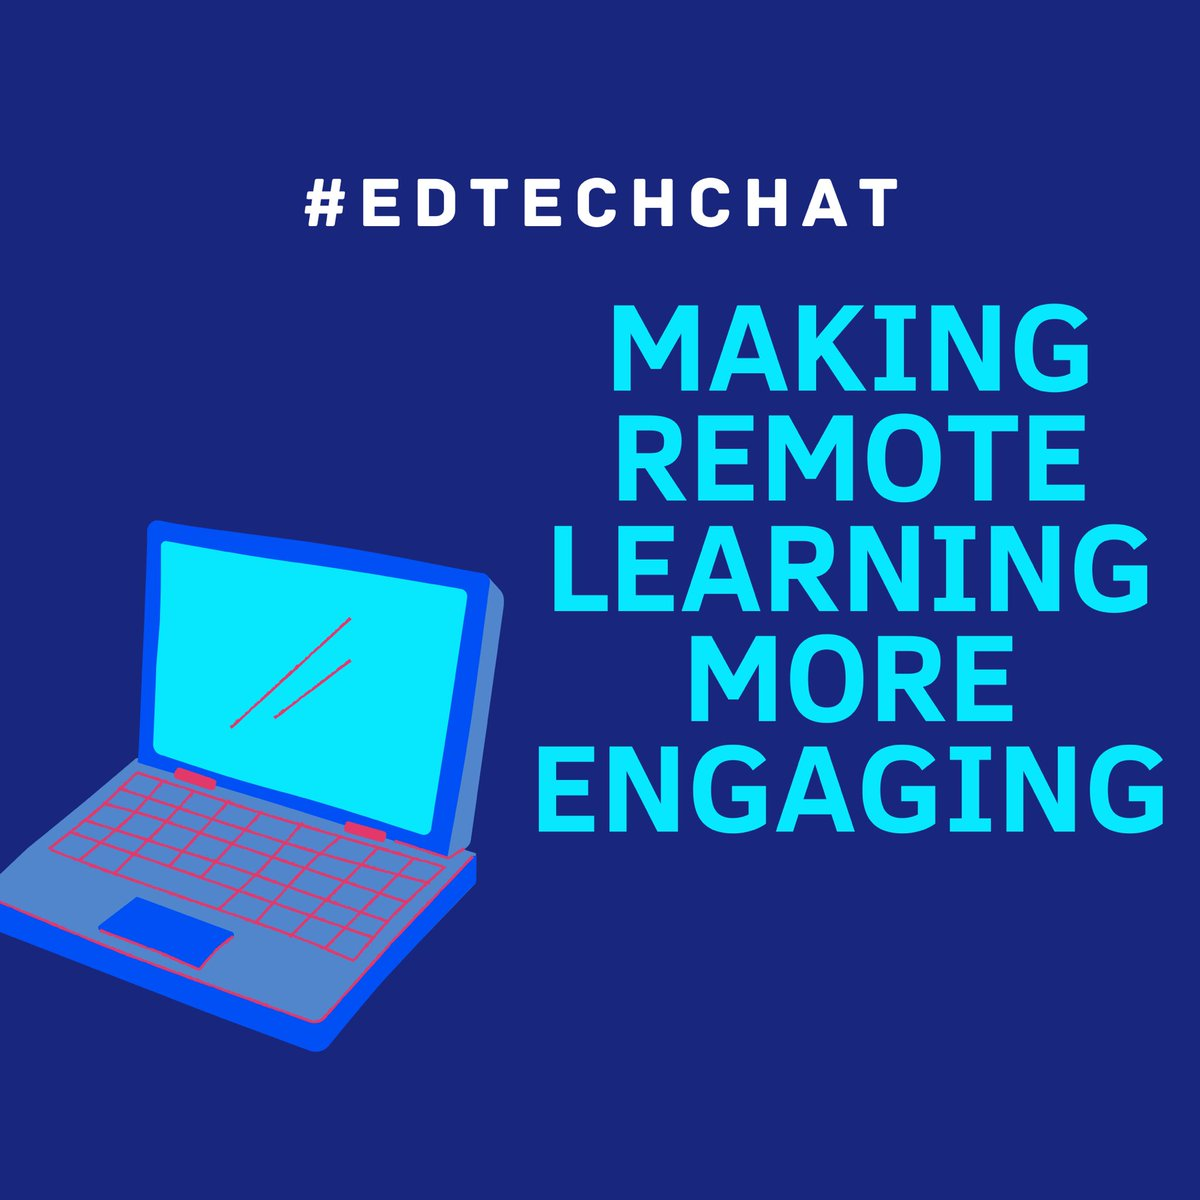 """In one hour, we will be rocking #edtechchat as we discuss """"Making Remote Learning More Engaging"""""""